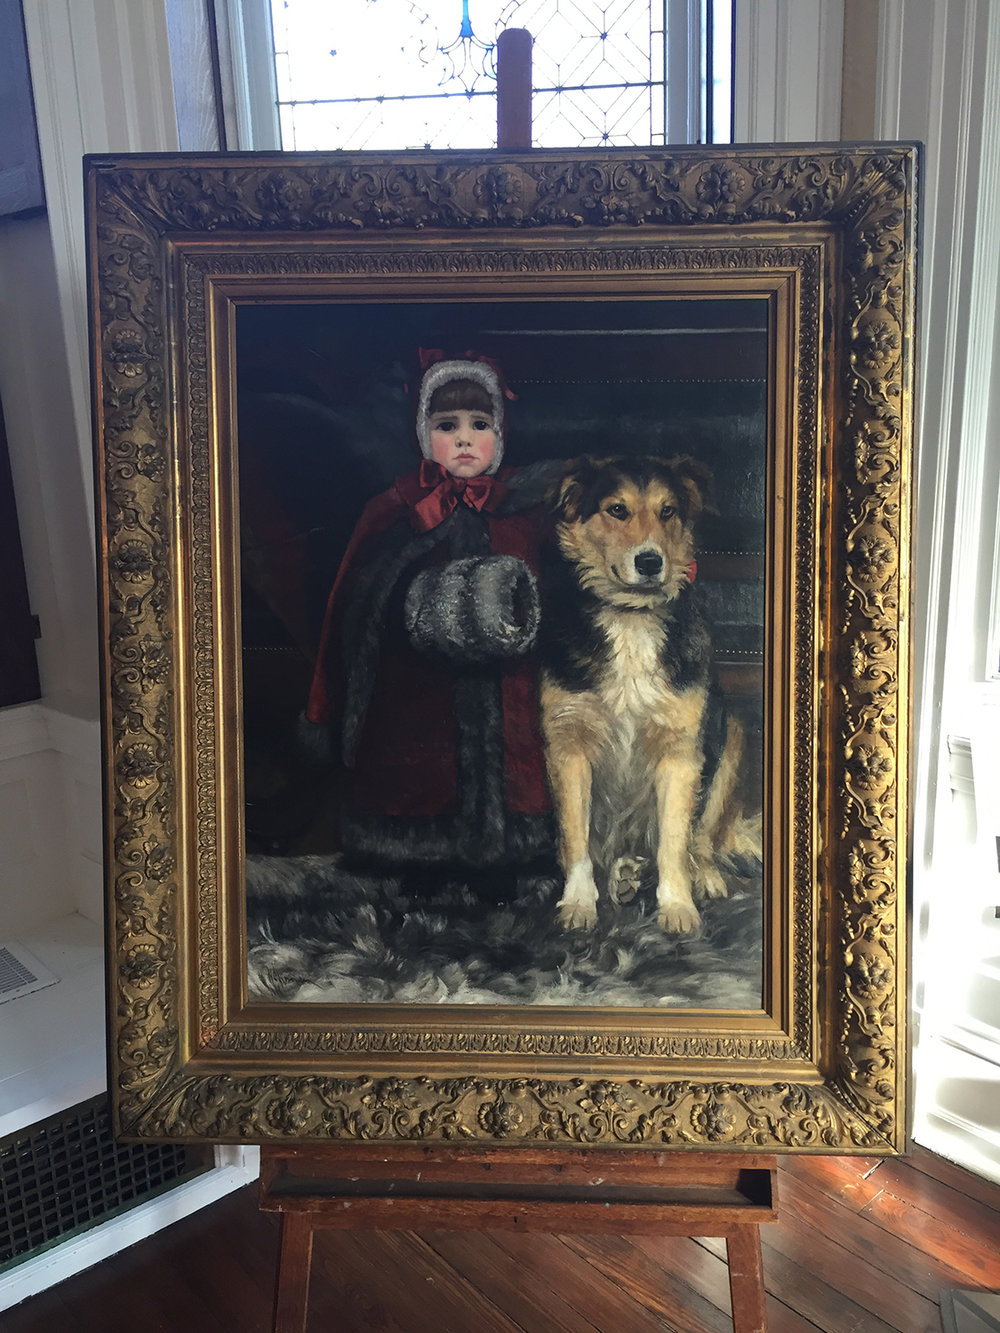 Martha Hovenden and Her Dog, by Helen Corson Hovenden